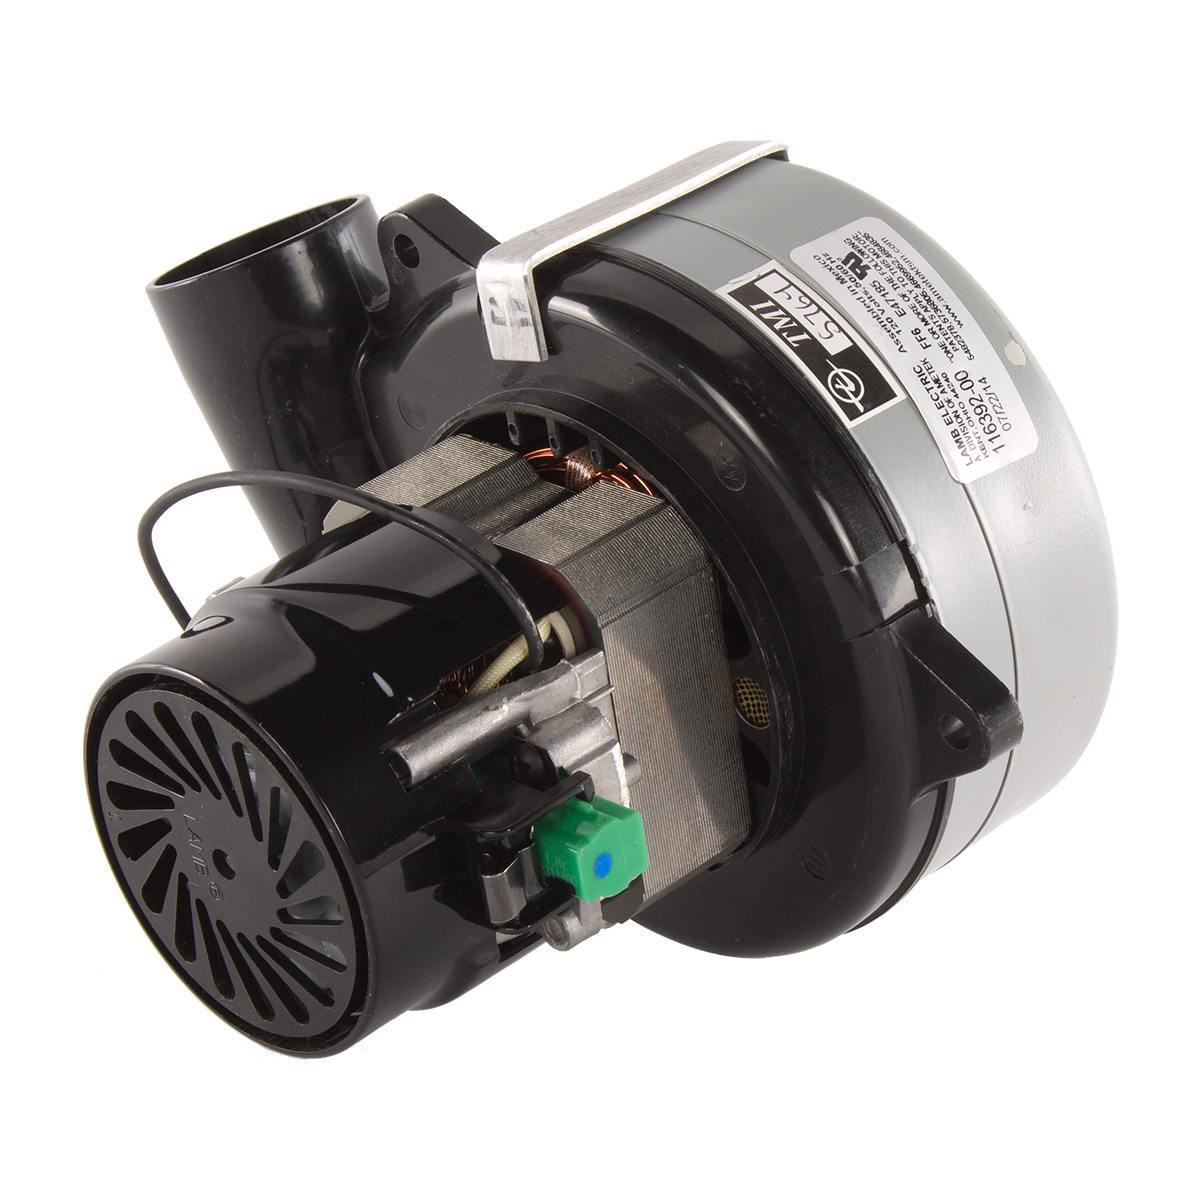 Ametek 2 Stage Vacuum Motor 11639200 Cc With Metal Adapter